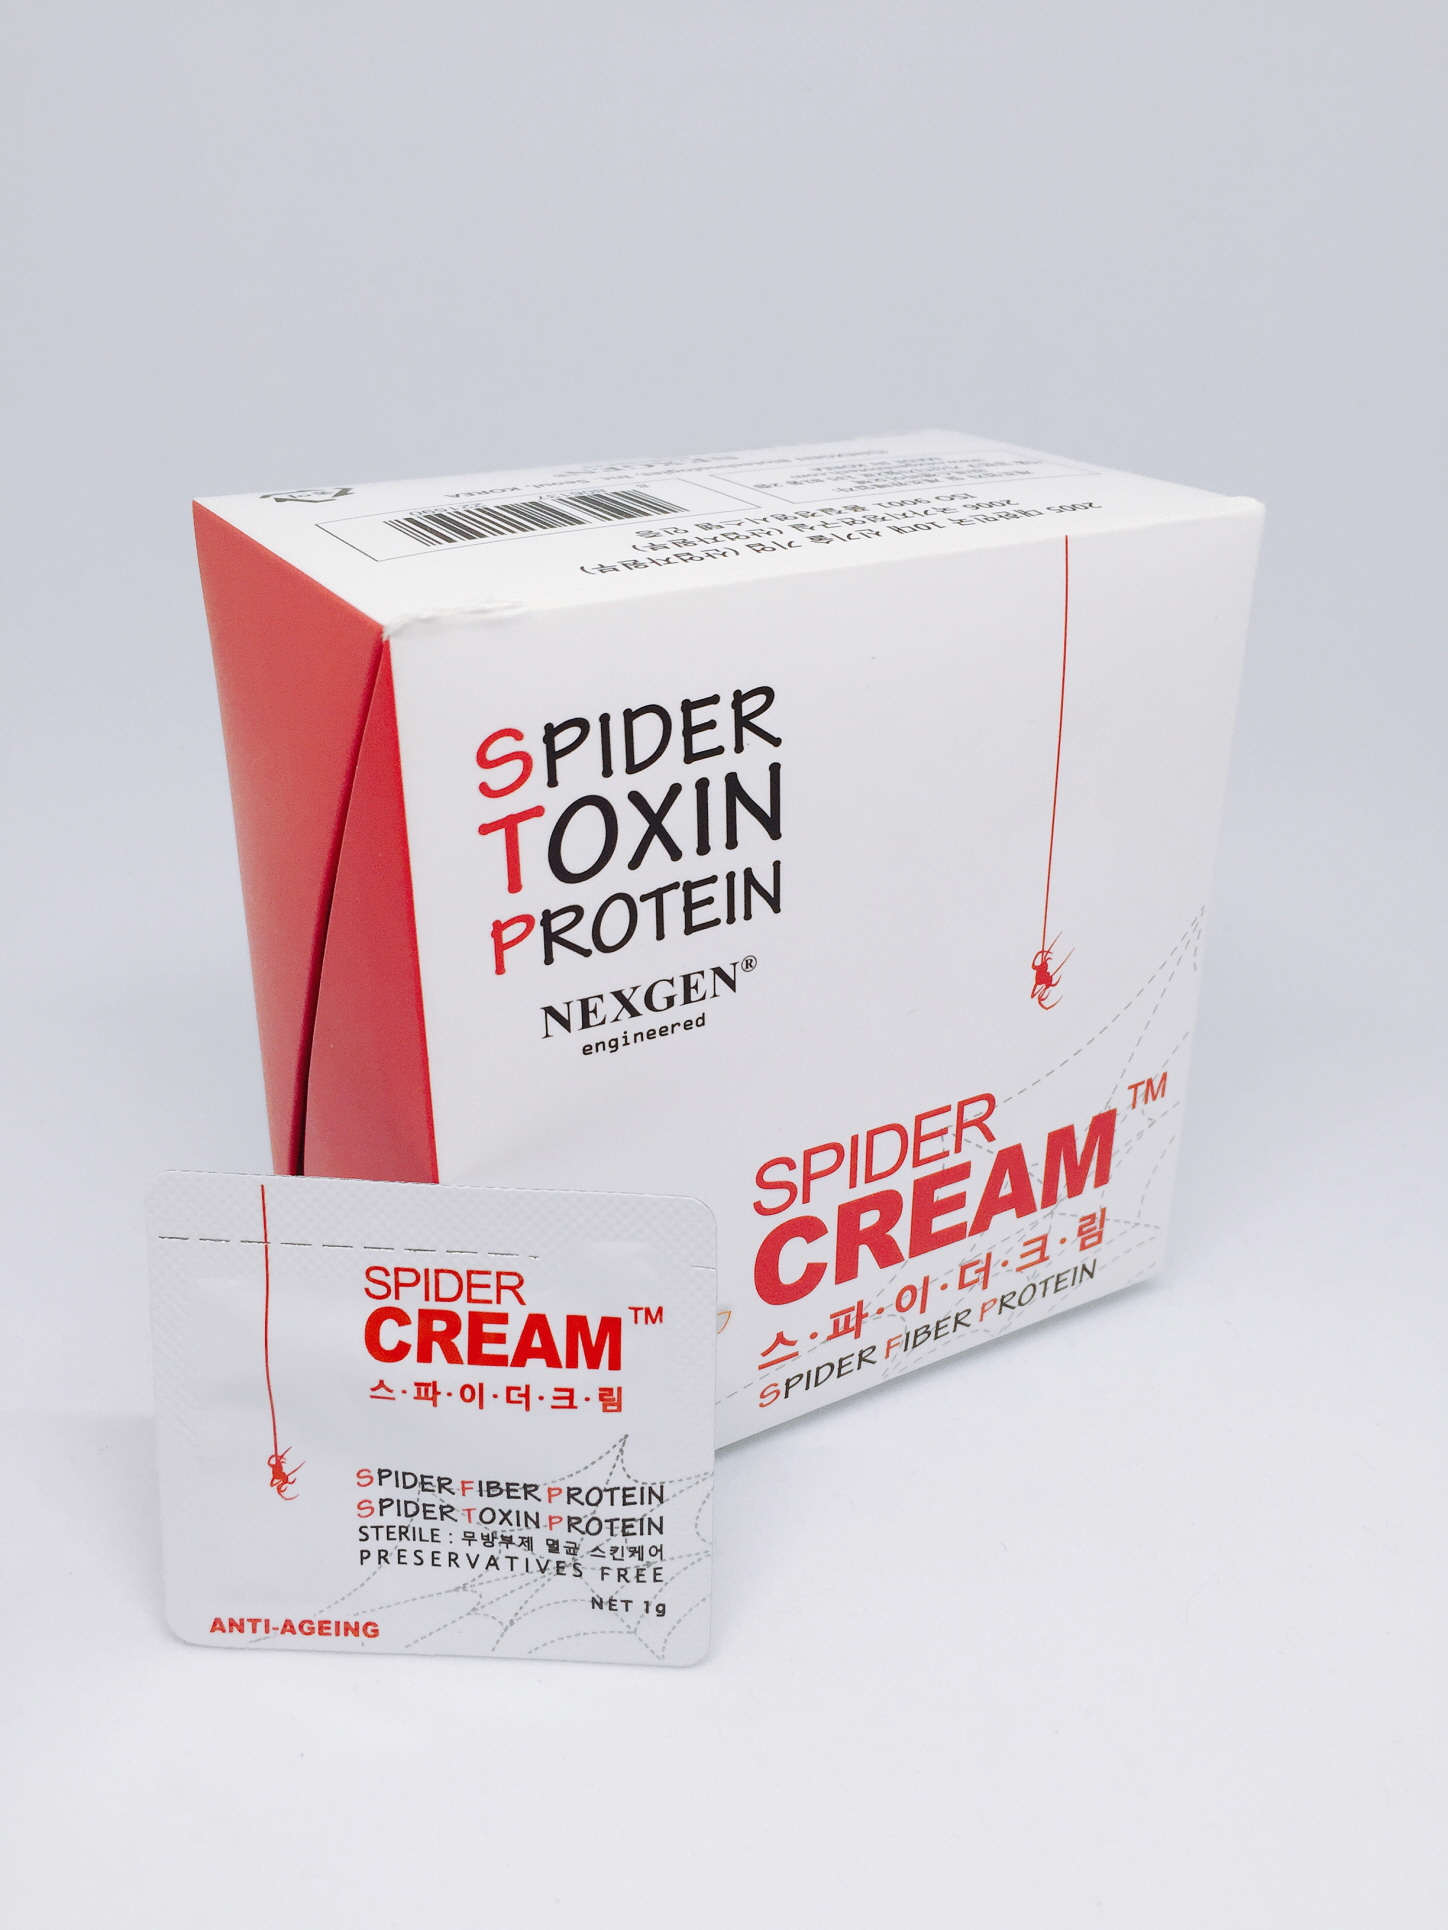 Anti-Wrinkle Cream with Spider Toxin & Fiber Proteins - SPIDER CREAM Preservative Free